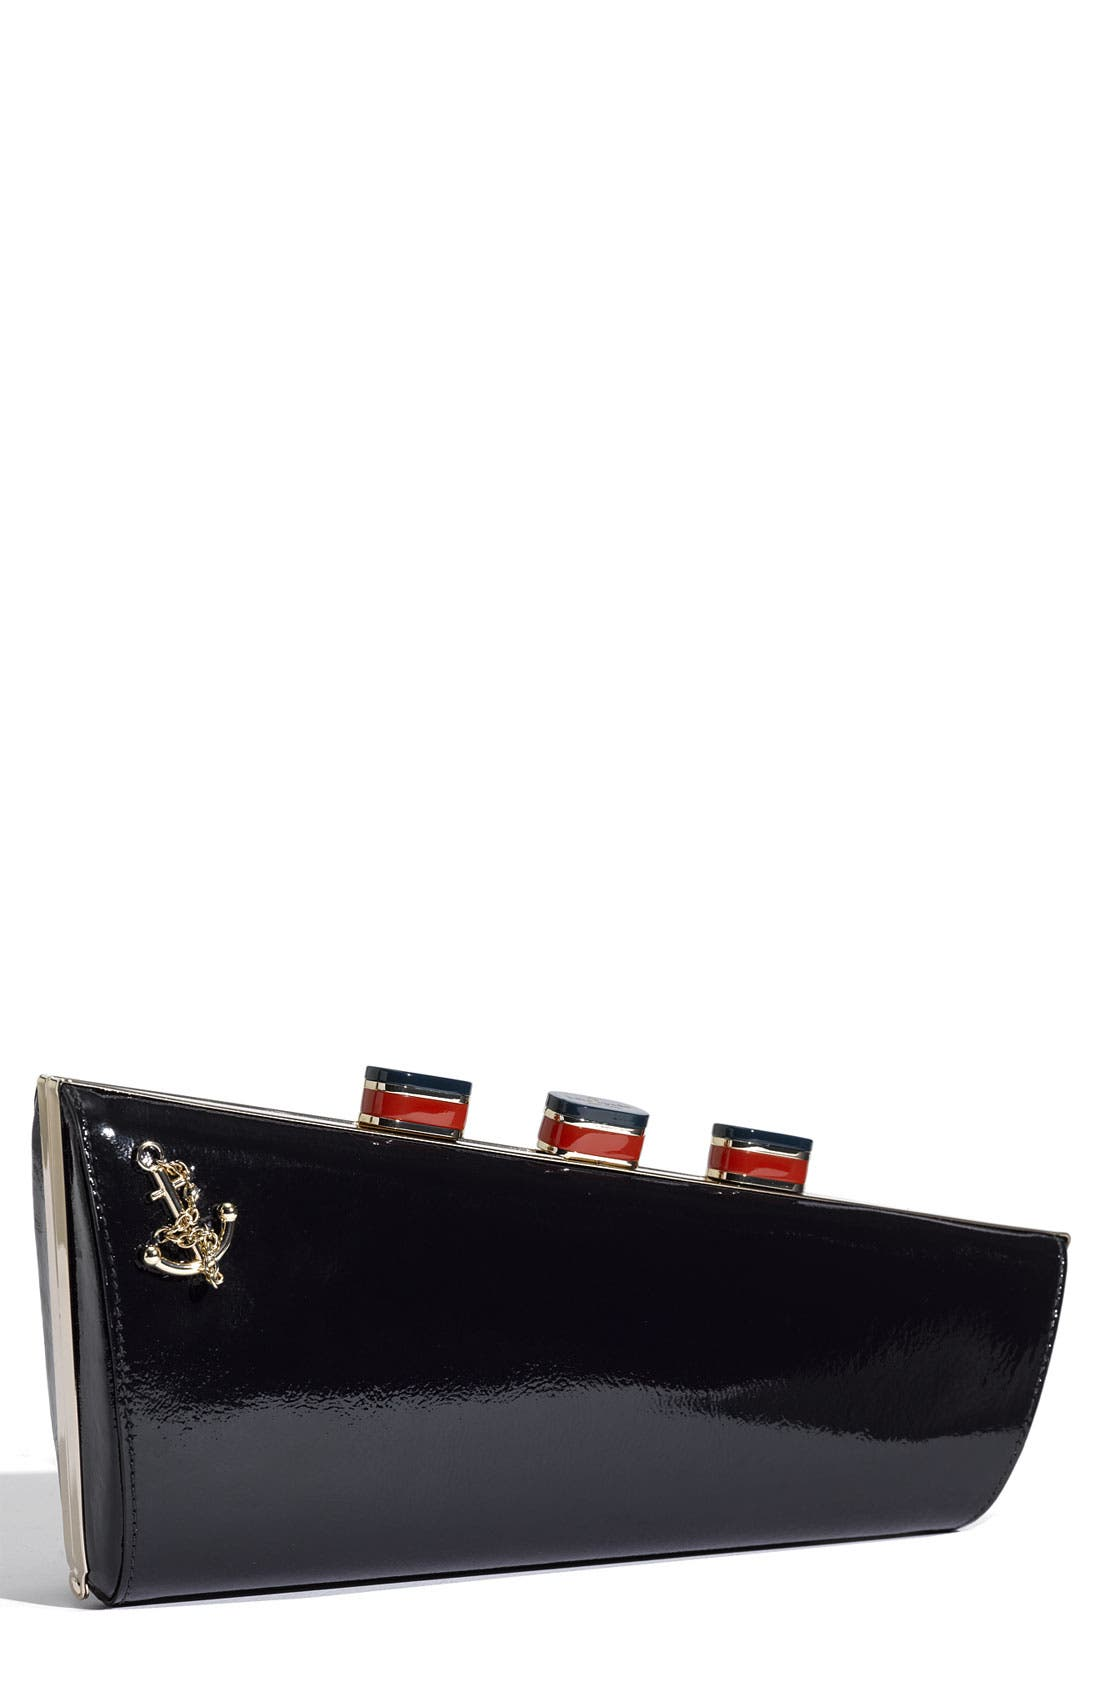 Main Image - kate spade new york 'barclay street' ship clutch